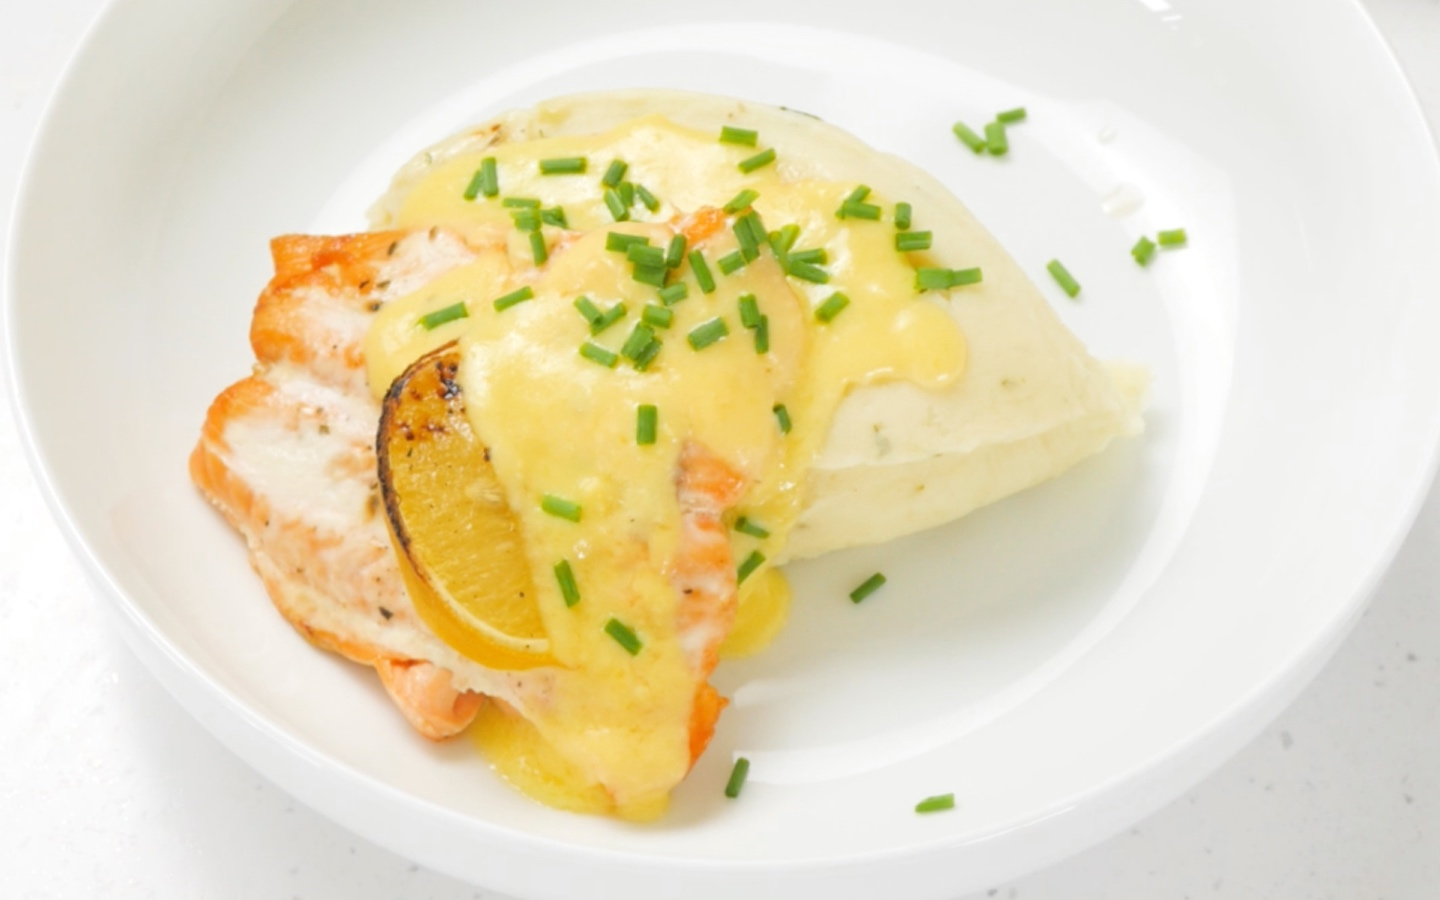 Baked Salmon with Hollandaise Sauce